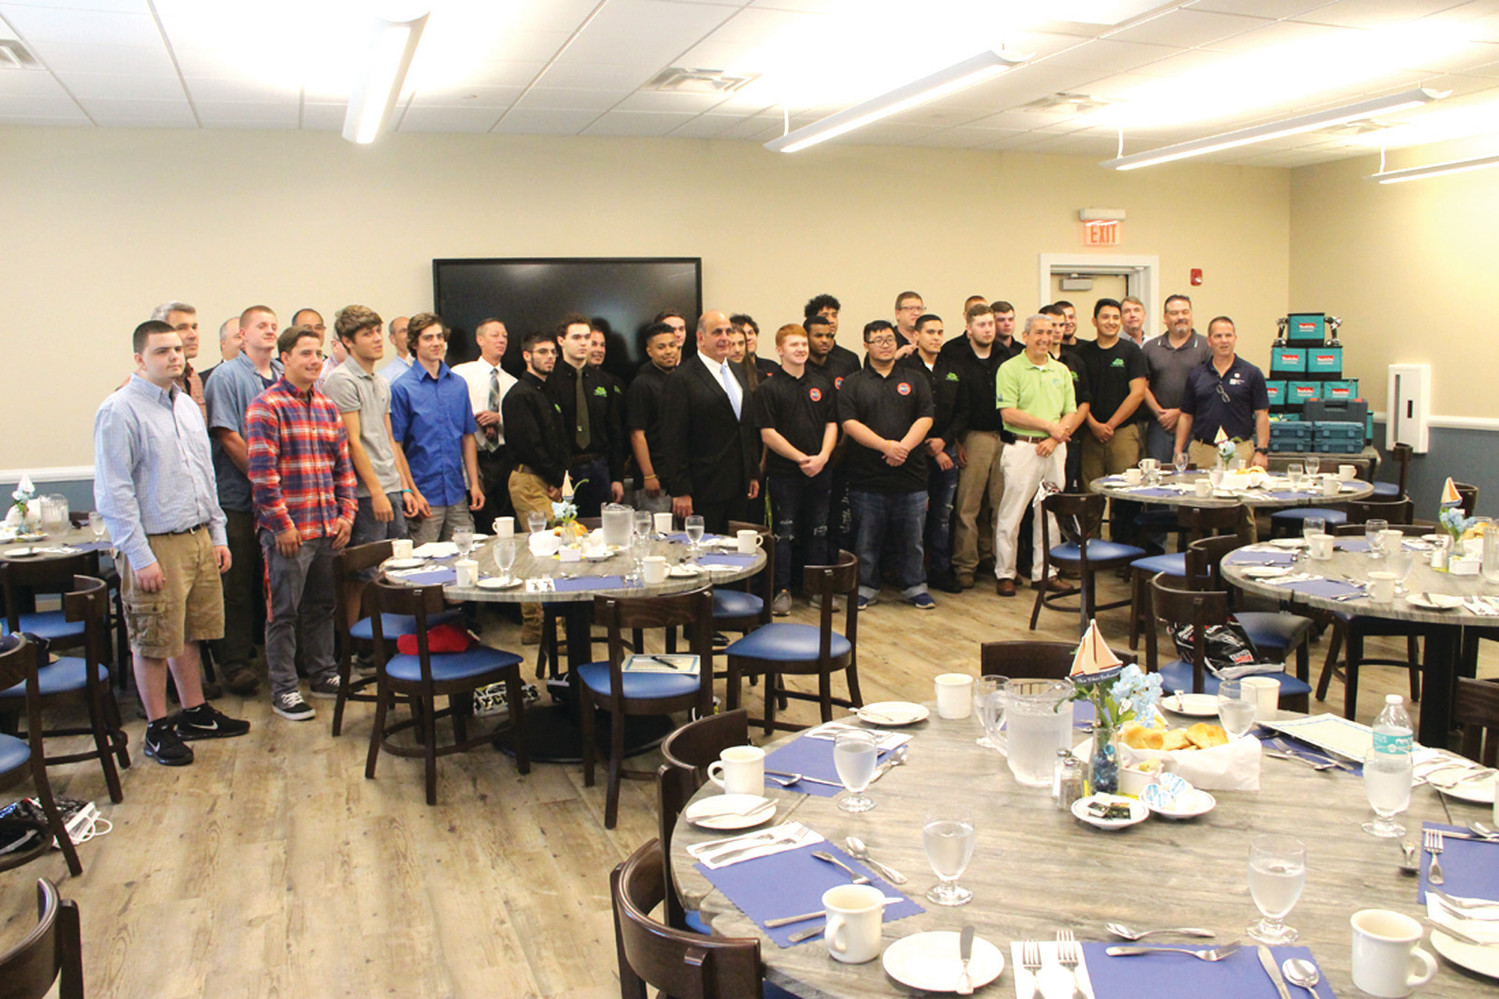 AT SCHOLARSHIP EVENT: Building trades officials, faculty, students and Acting Mayor Joseph Solomon joined Wednesday for the award of Tools of the Trade scholarships.